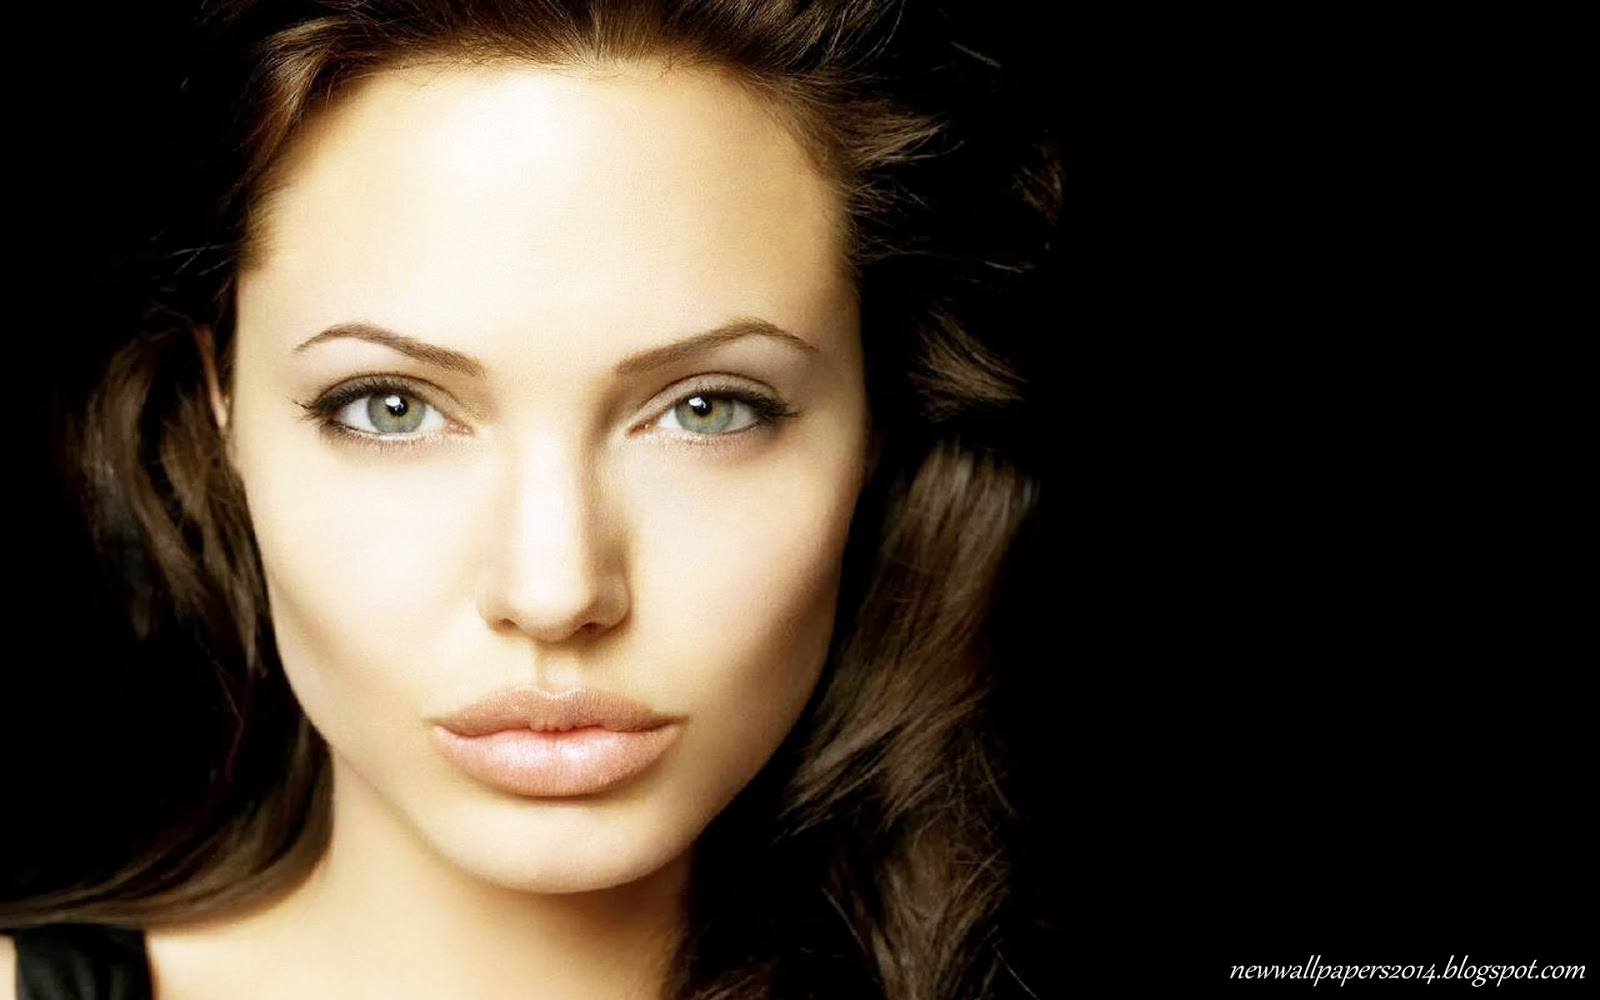 Angelina Jolie News: Angelina Jolie HD Wallpapers